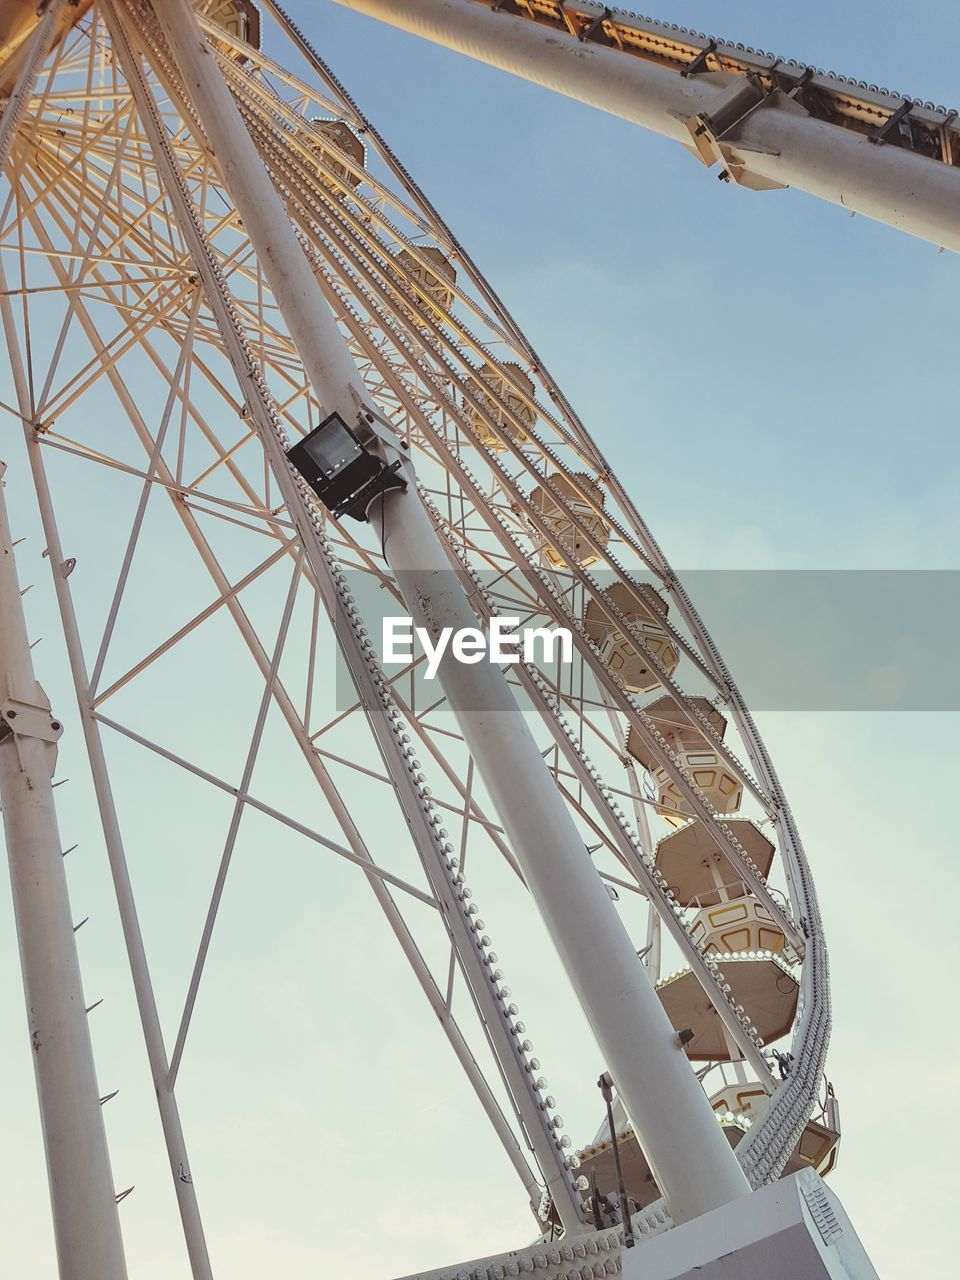 low angle view, sky, built structure, architecture, day, metal, no people, nature, amusement park, amusement park ride, ferris wheel, arts culture and entertainment, outdoors, cloud - sky, building exterior, tall - high, machinery, crane - construction machinery, construction industry, focus on foreground, fairground